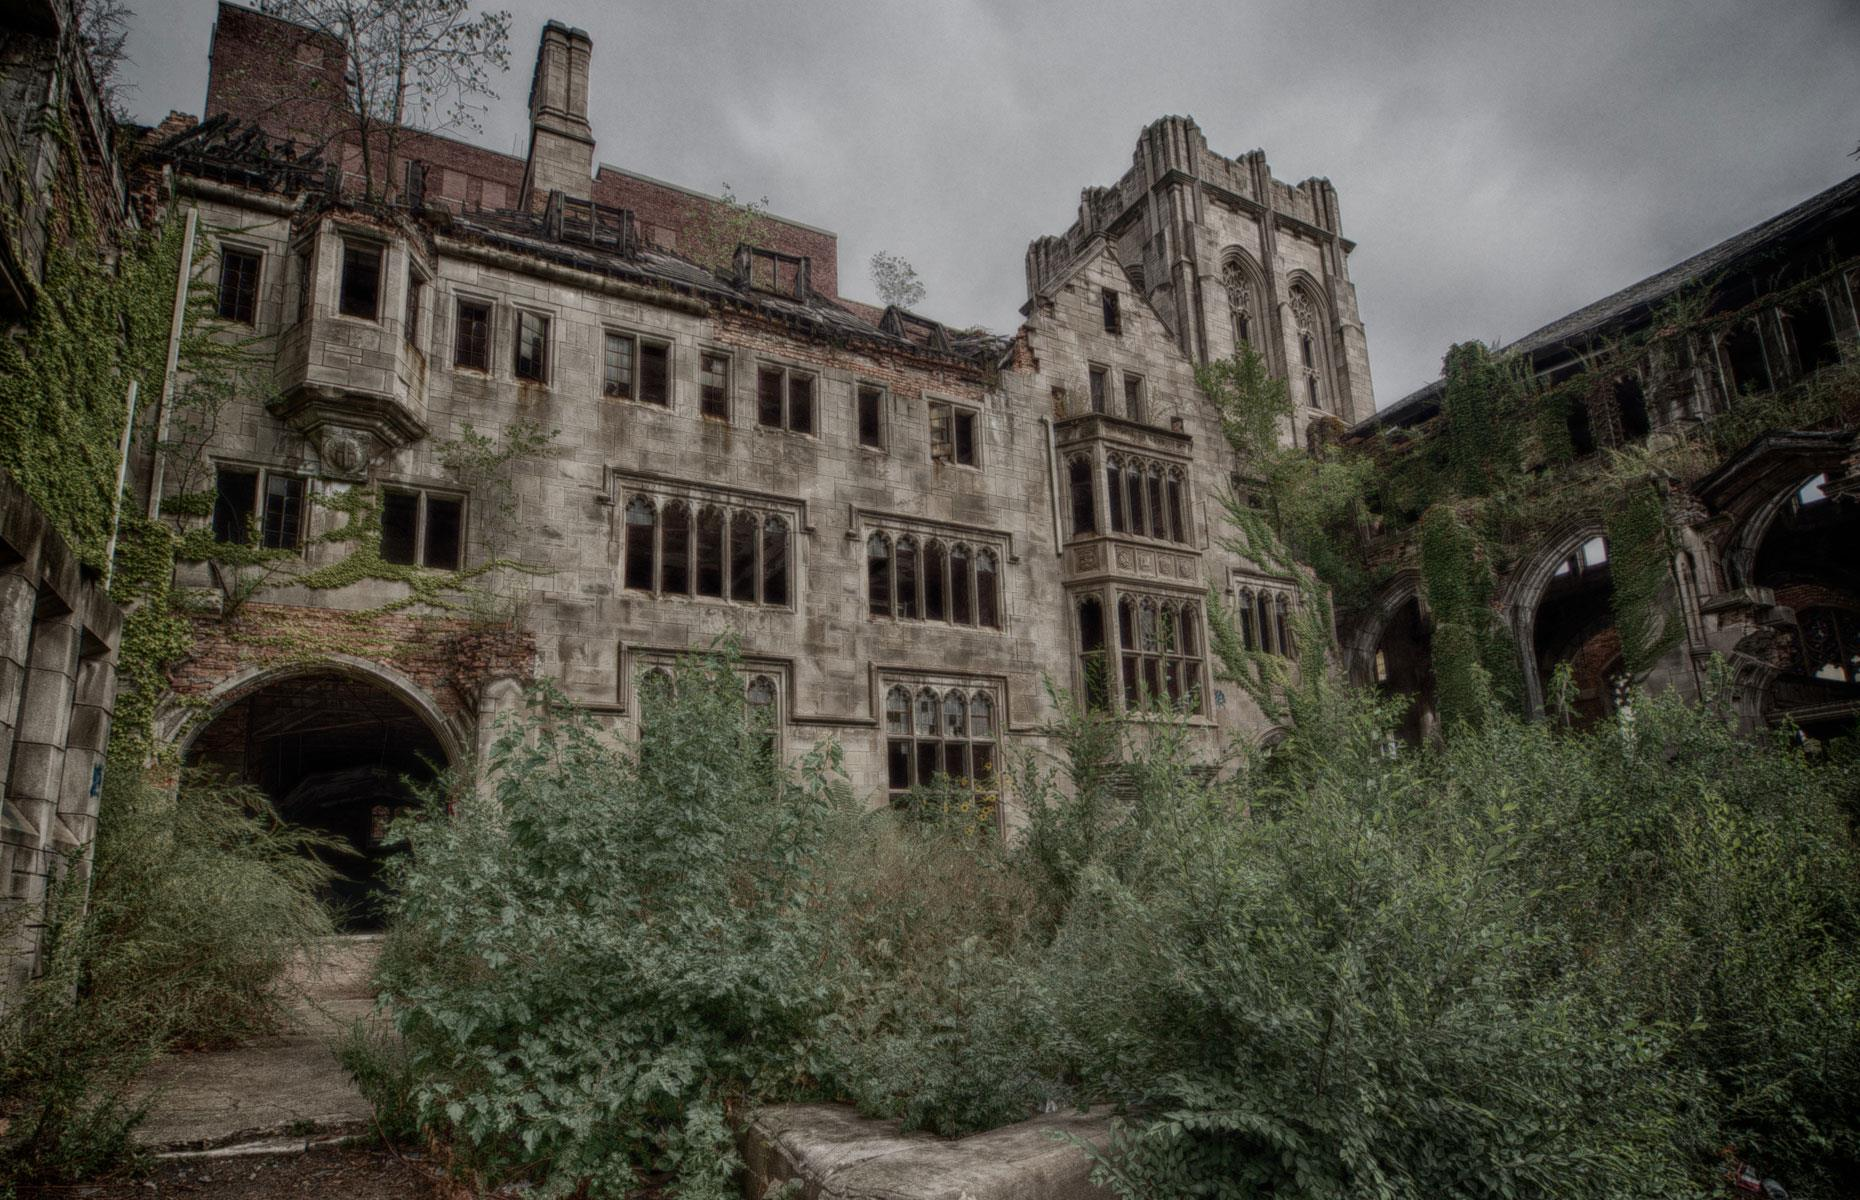 Slide 28 of 101: America's grandest abandoned place of worship, City Methodist Church in Gary was completed in 1926 to the tune of around $800,000 at the time. During the steel boom years, the church was packed every Sunday. But as the industry declined, so did the number of attendees.